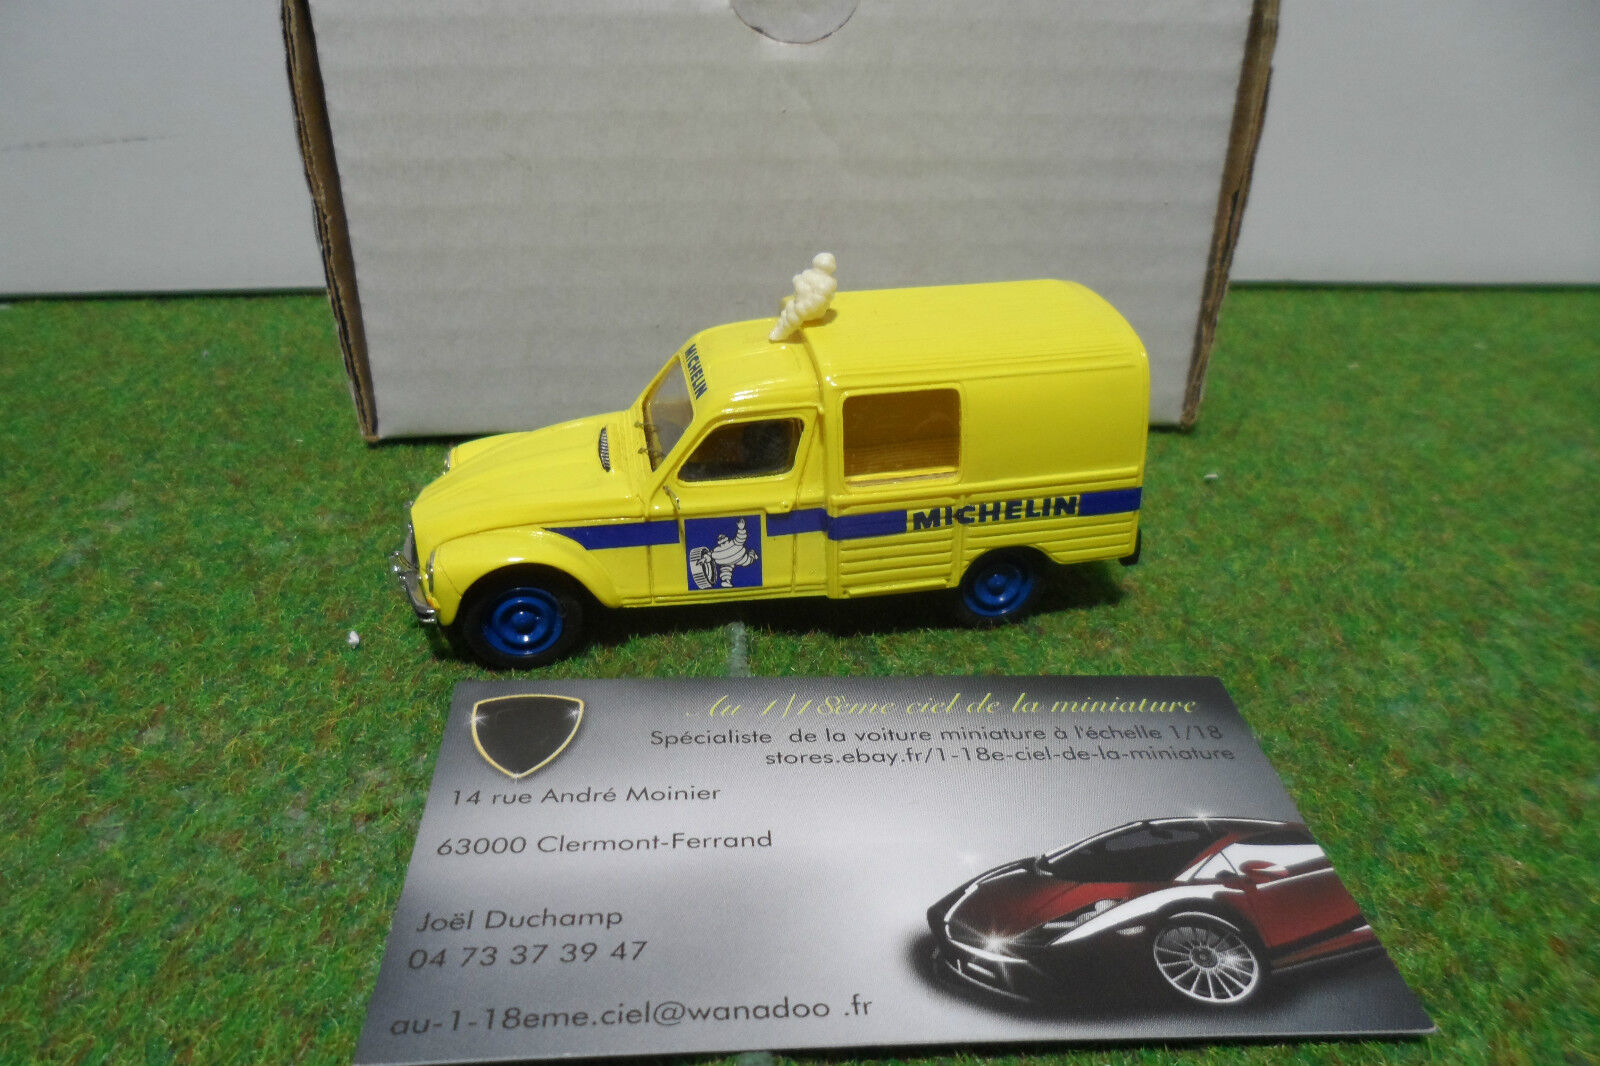 CITROËN AIANE MICHELIN KIT MONTE au 1 43 ORIGINAL MINIATURES PUB 006 voiture